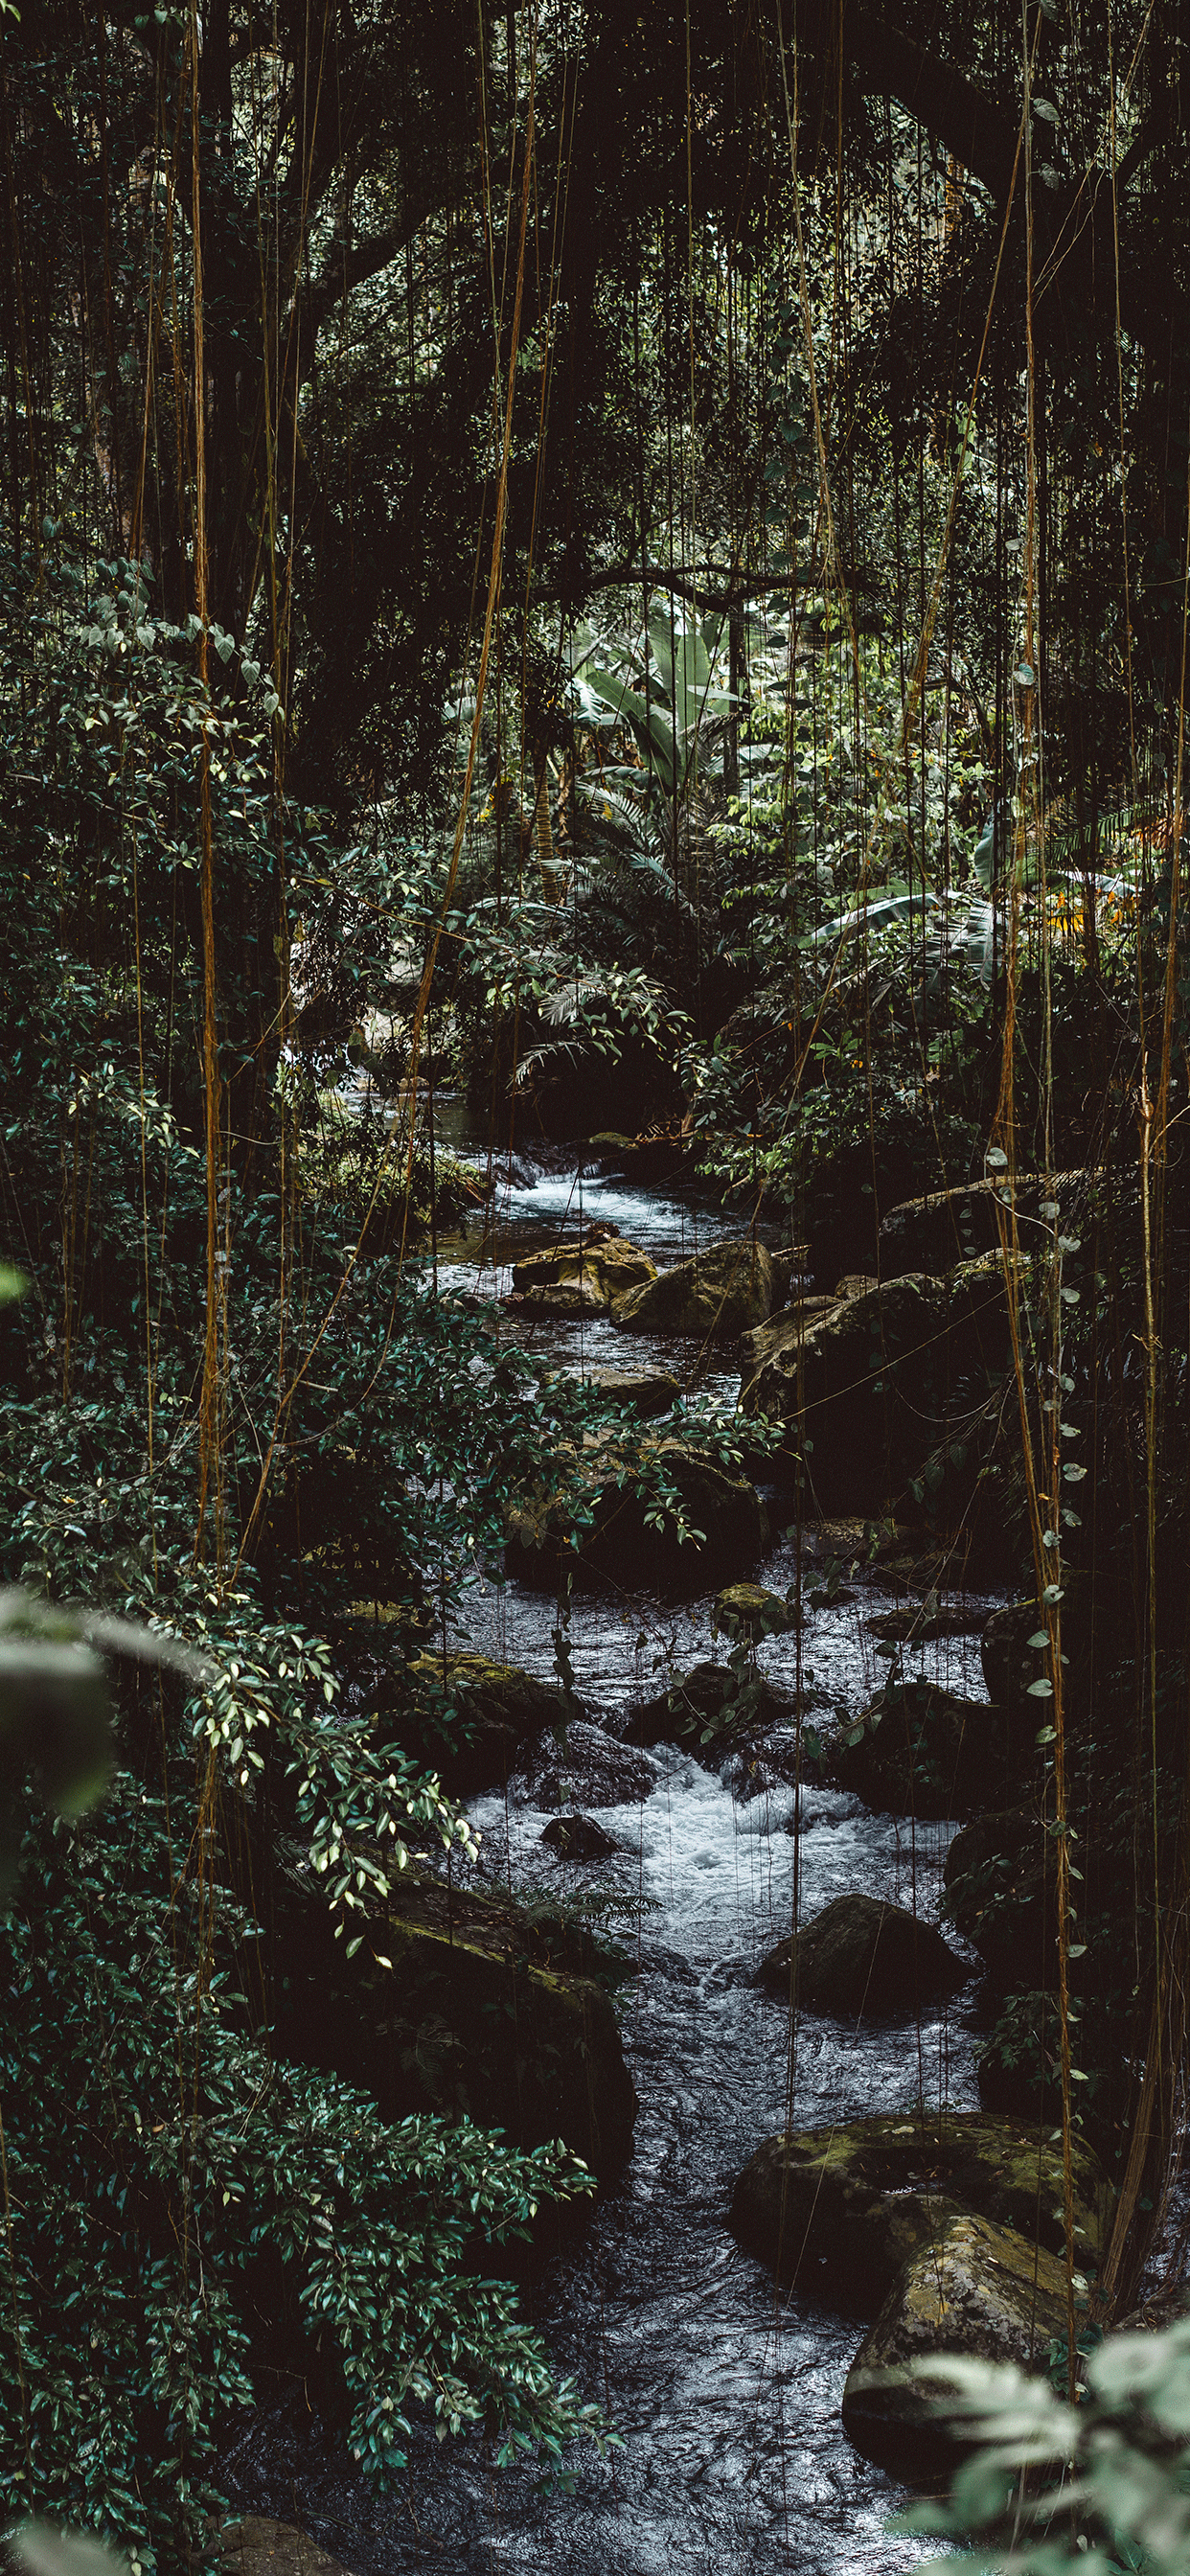 iPhone wallpaper jungle river Fonds d'écran iPhone du 06/11/2018